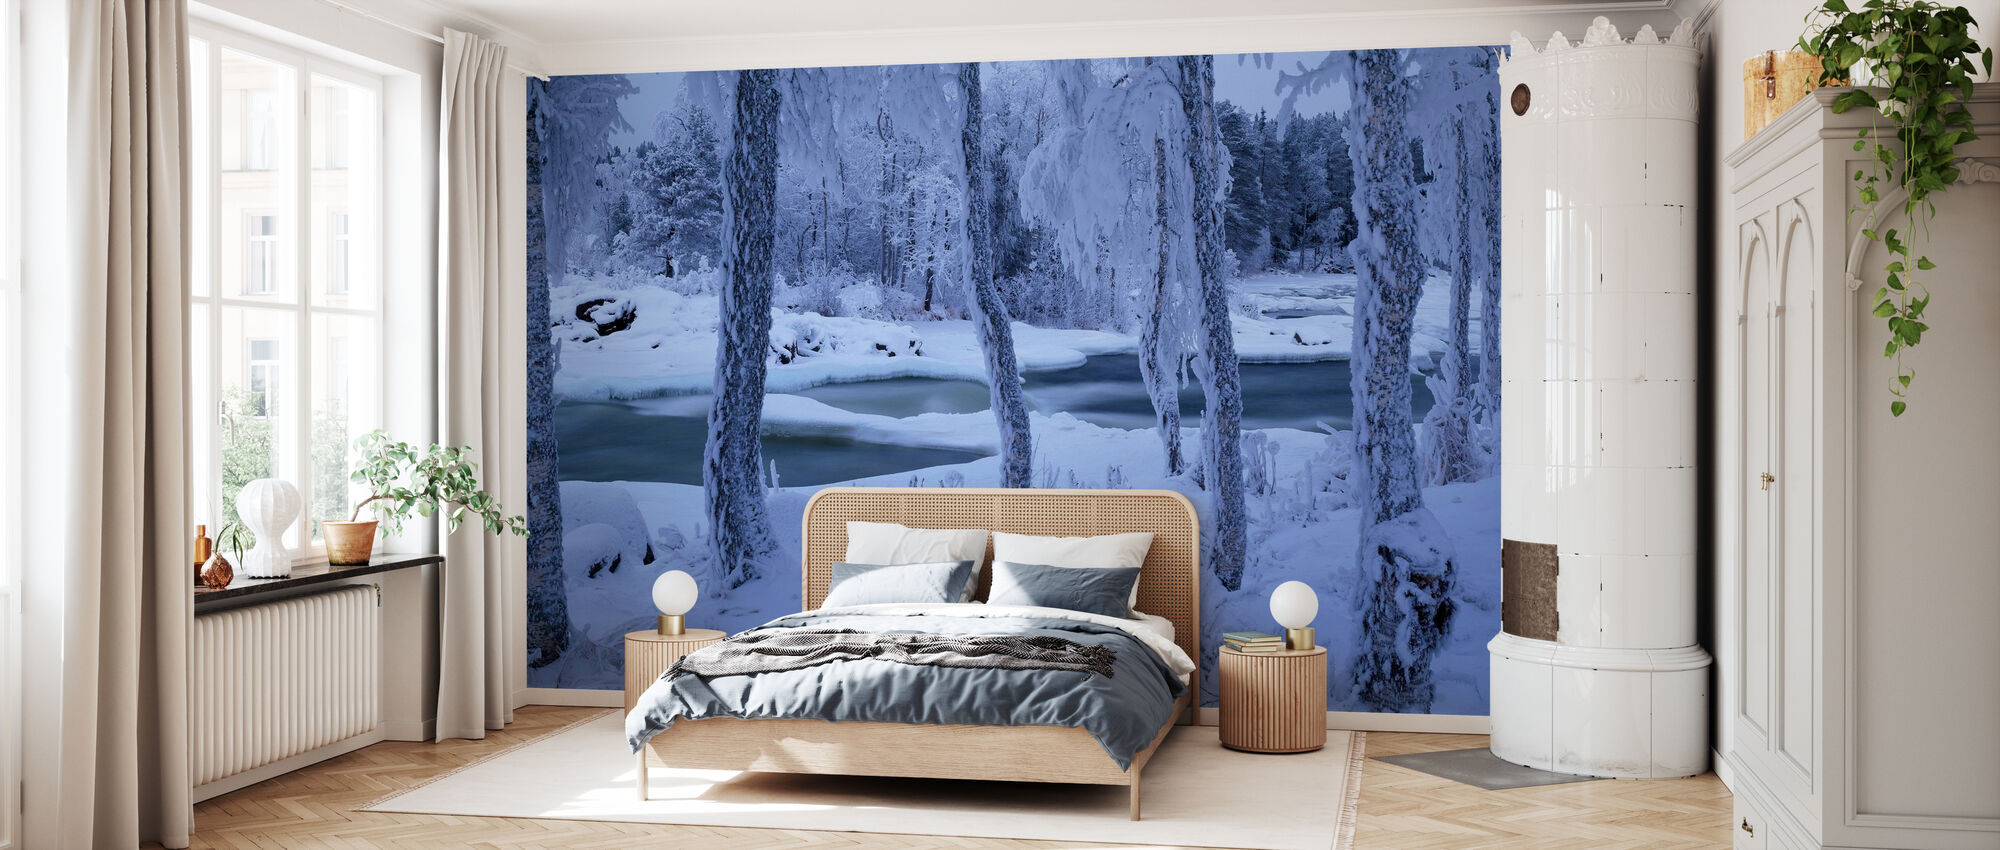 Kengisforsen in Winter Dress - Wallpaper - Bedroom